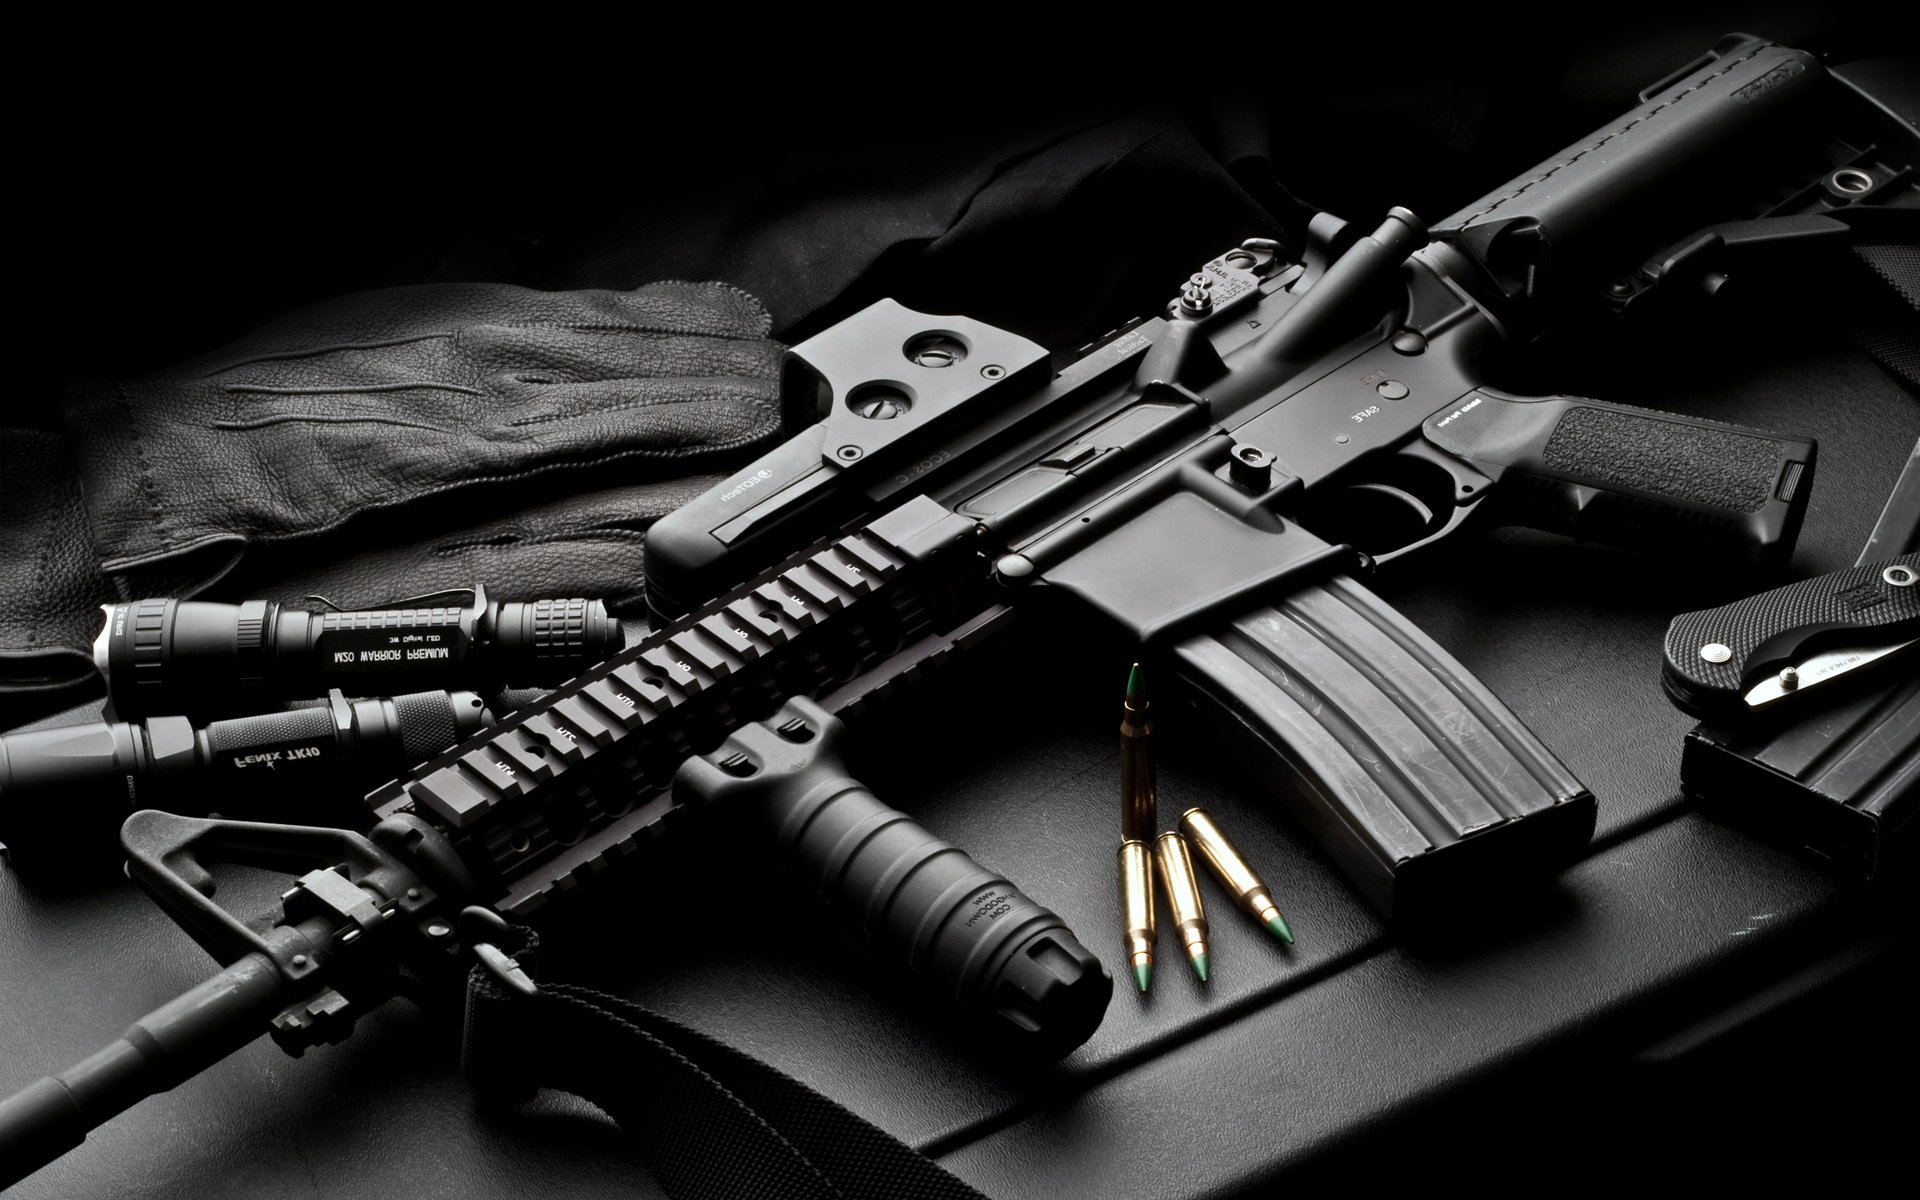 rifle desktop wallpapers download gun images 1 Hd Wallpapers 1920x1200